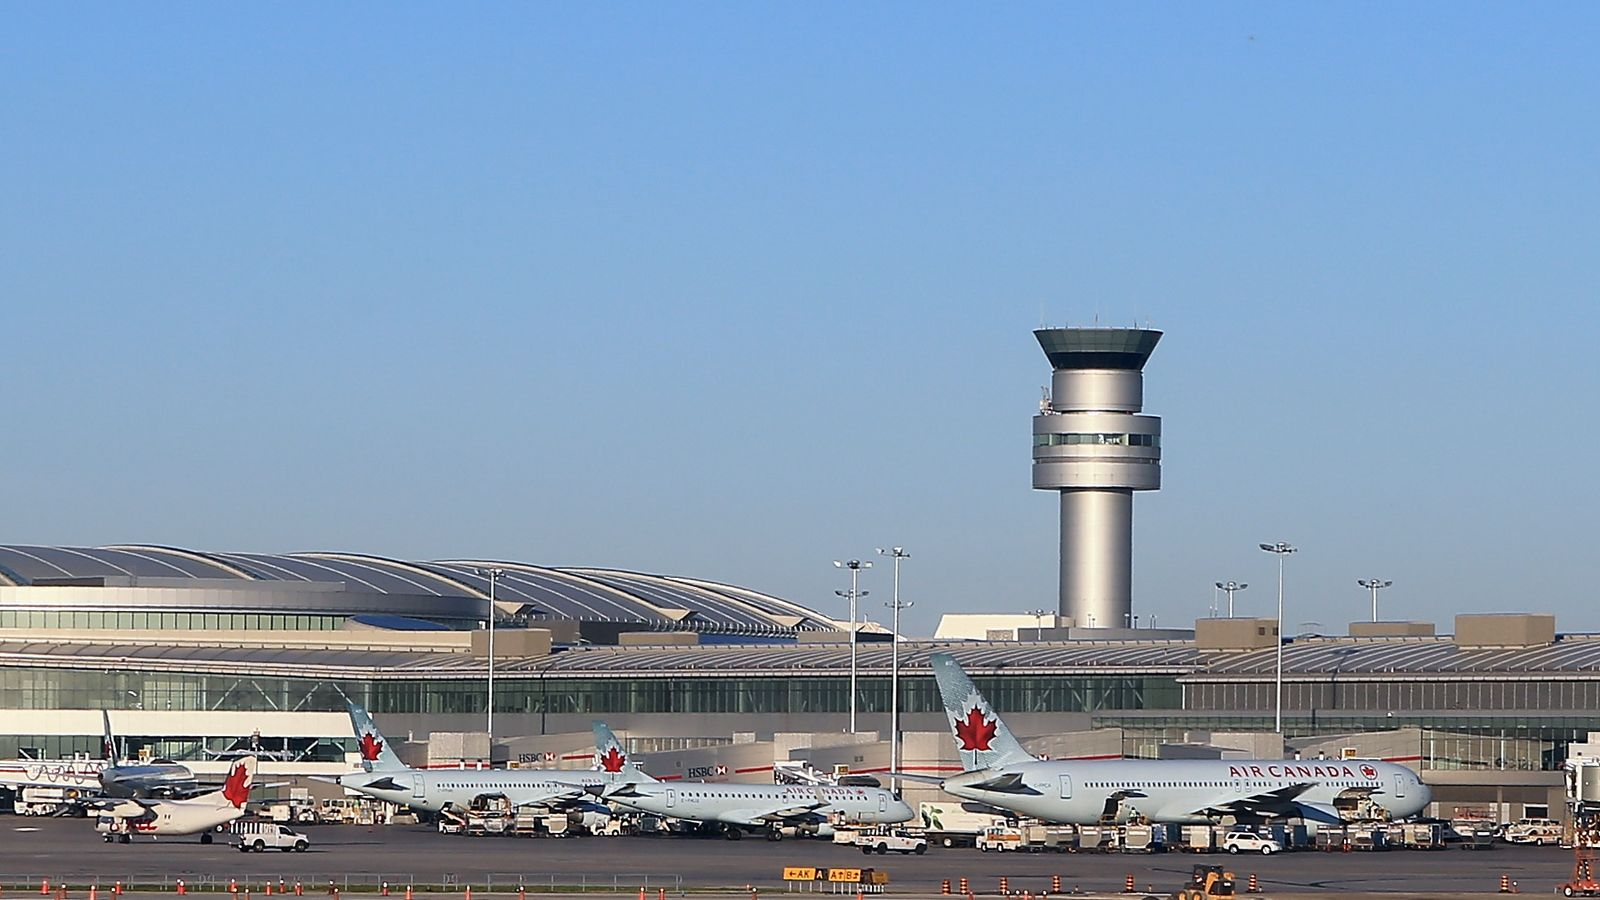 The Air Canada flight was carrying 140 people. File pic